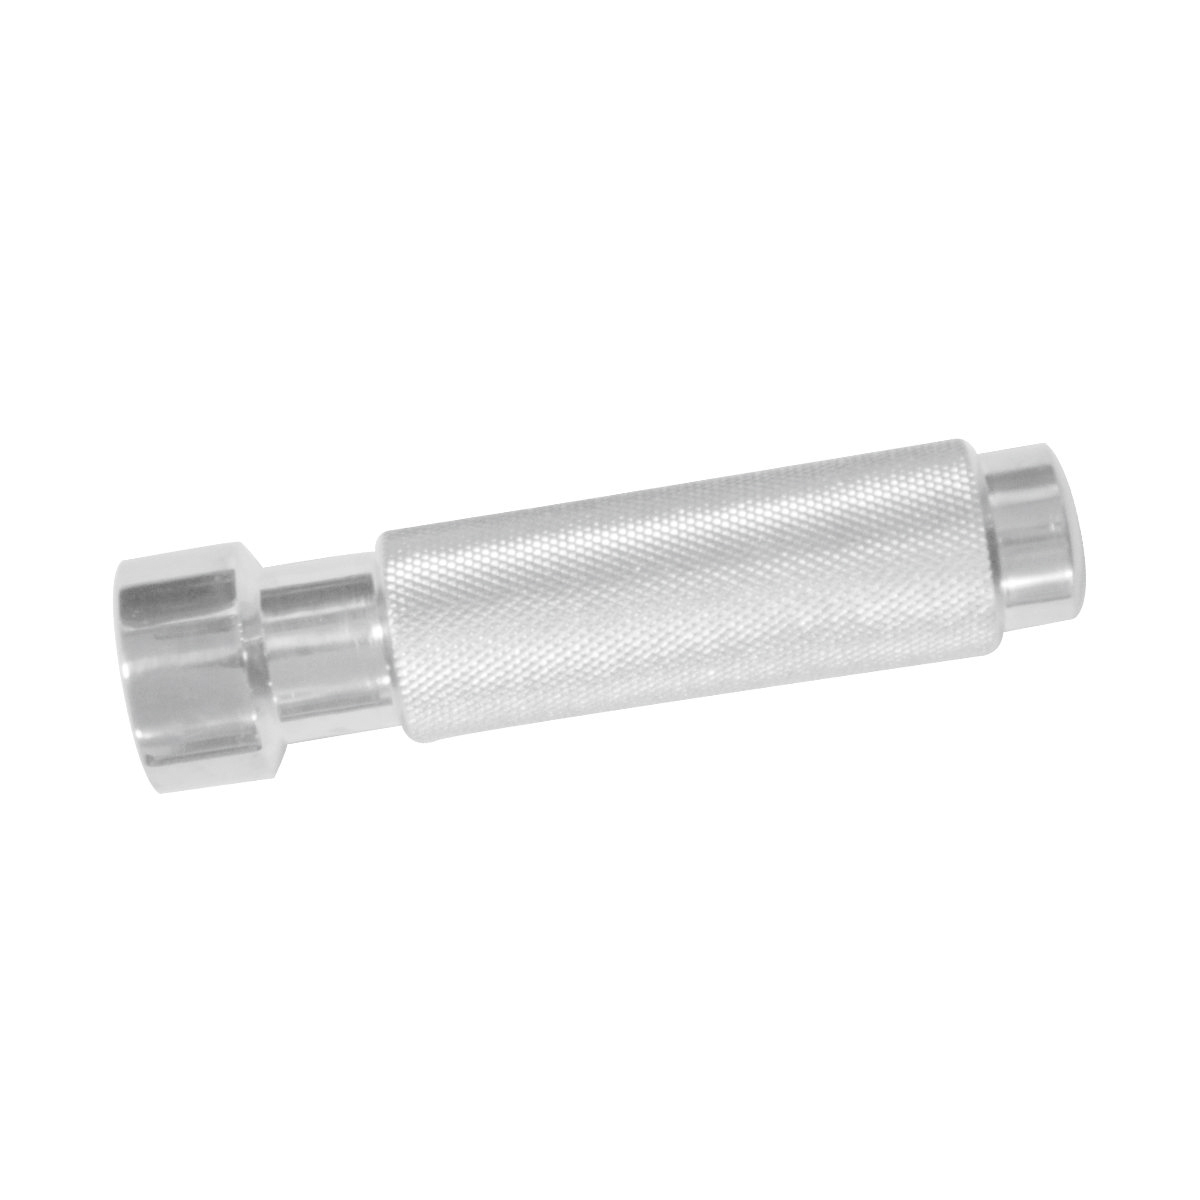 Handle for Extractor